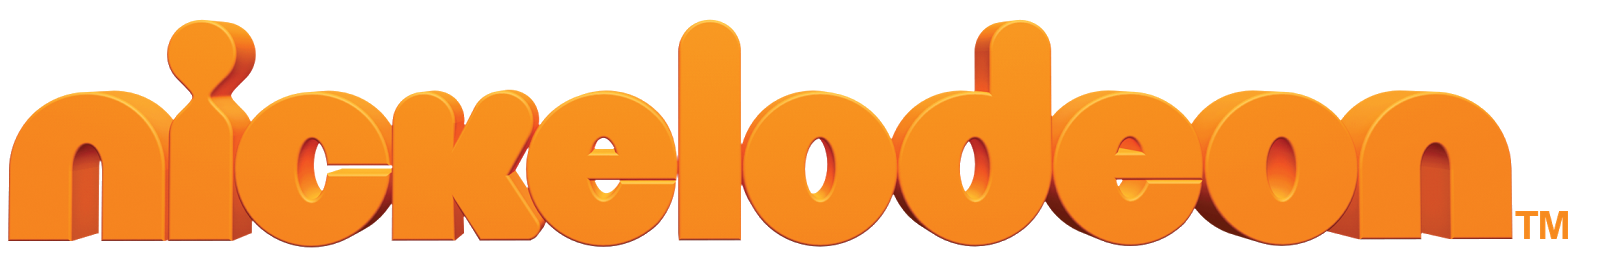 Nickelodeon - House Of Anubis BR Nick